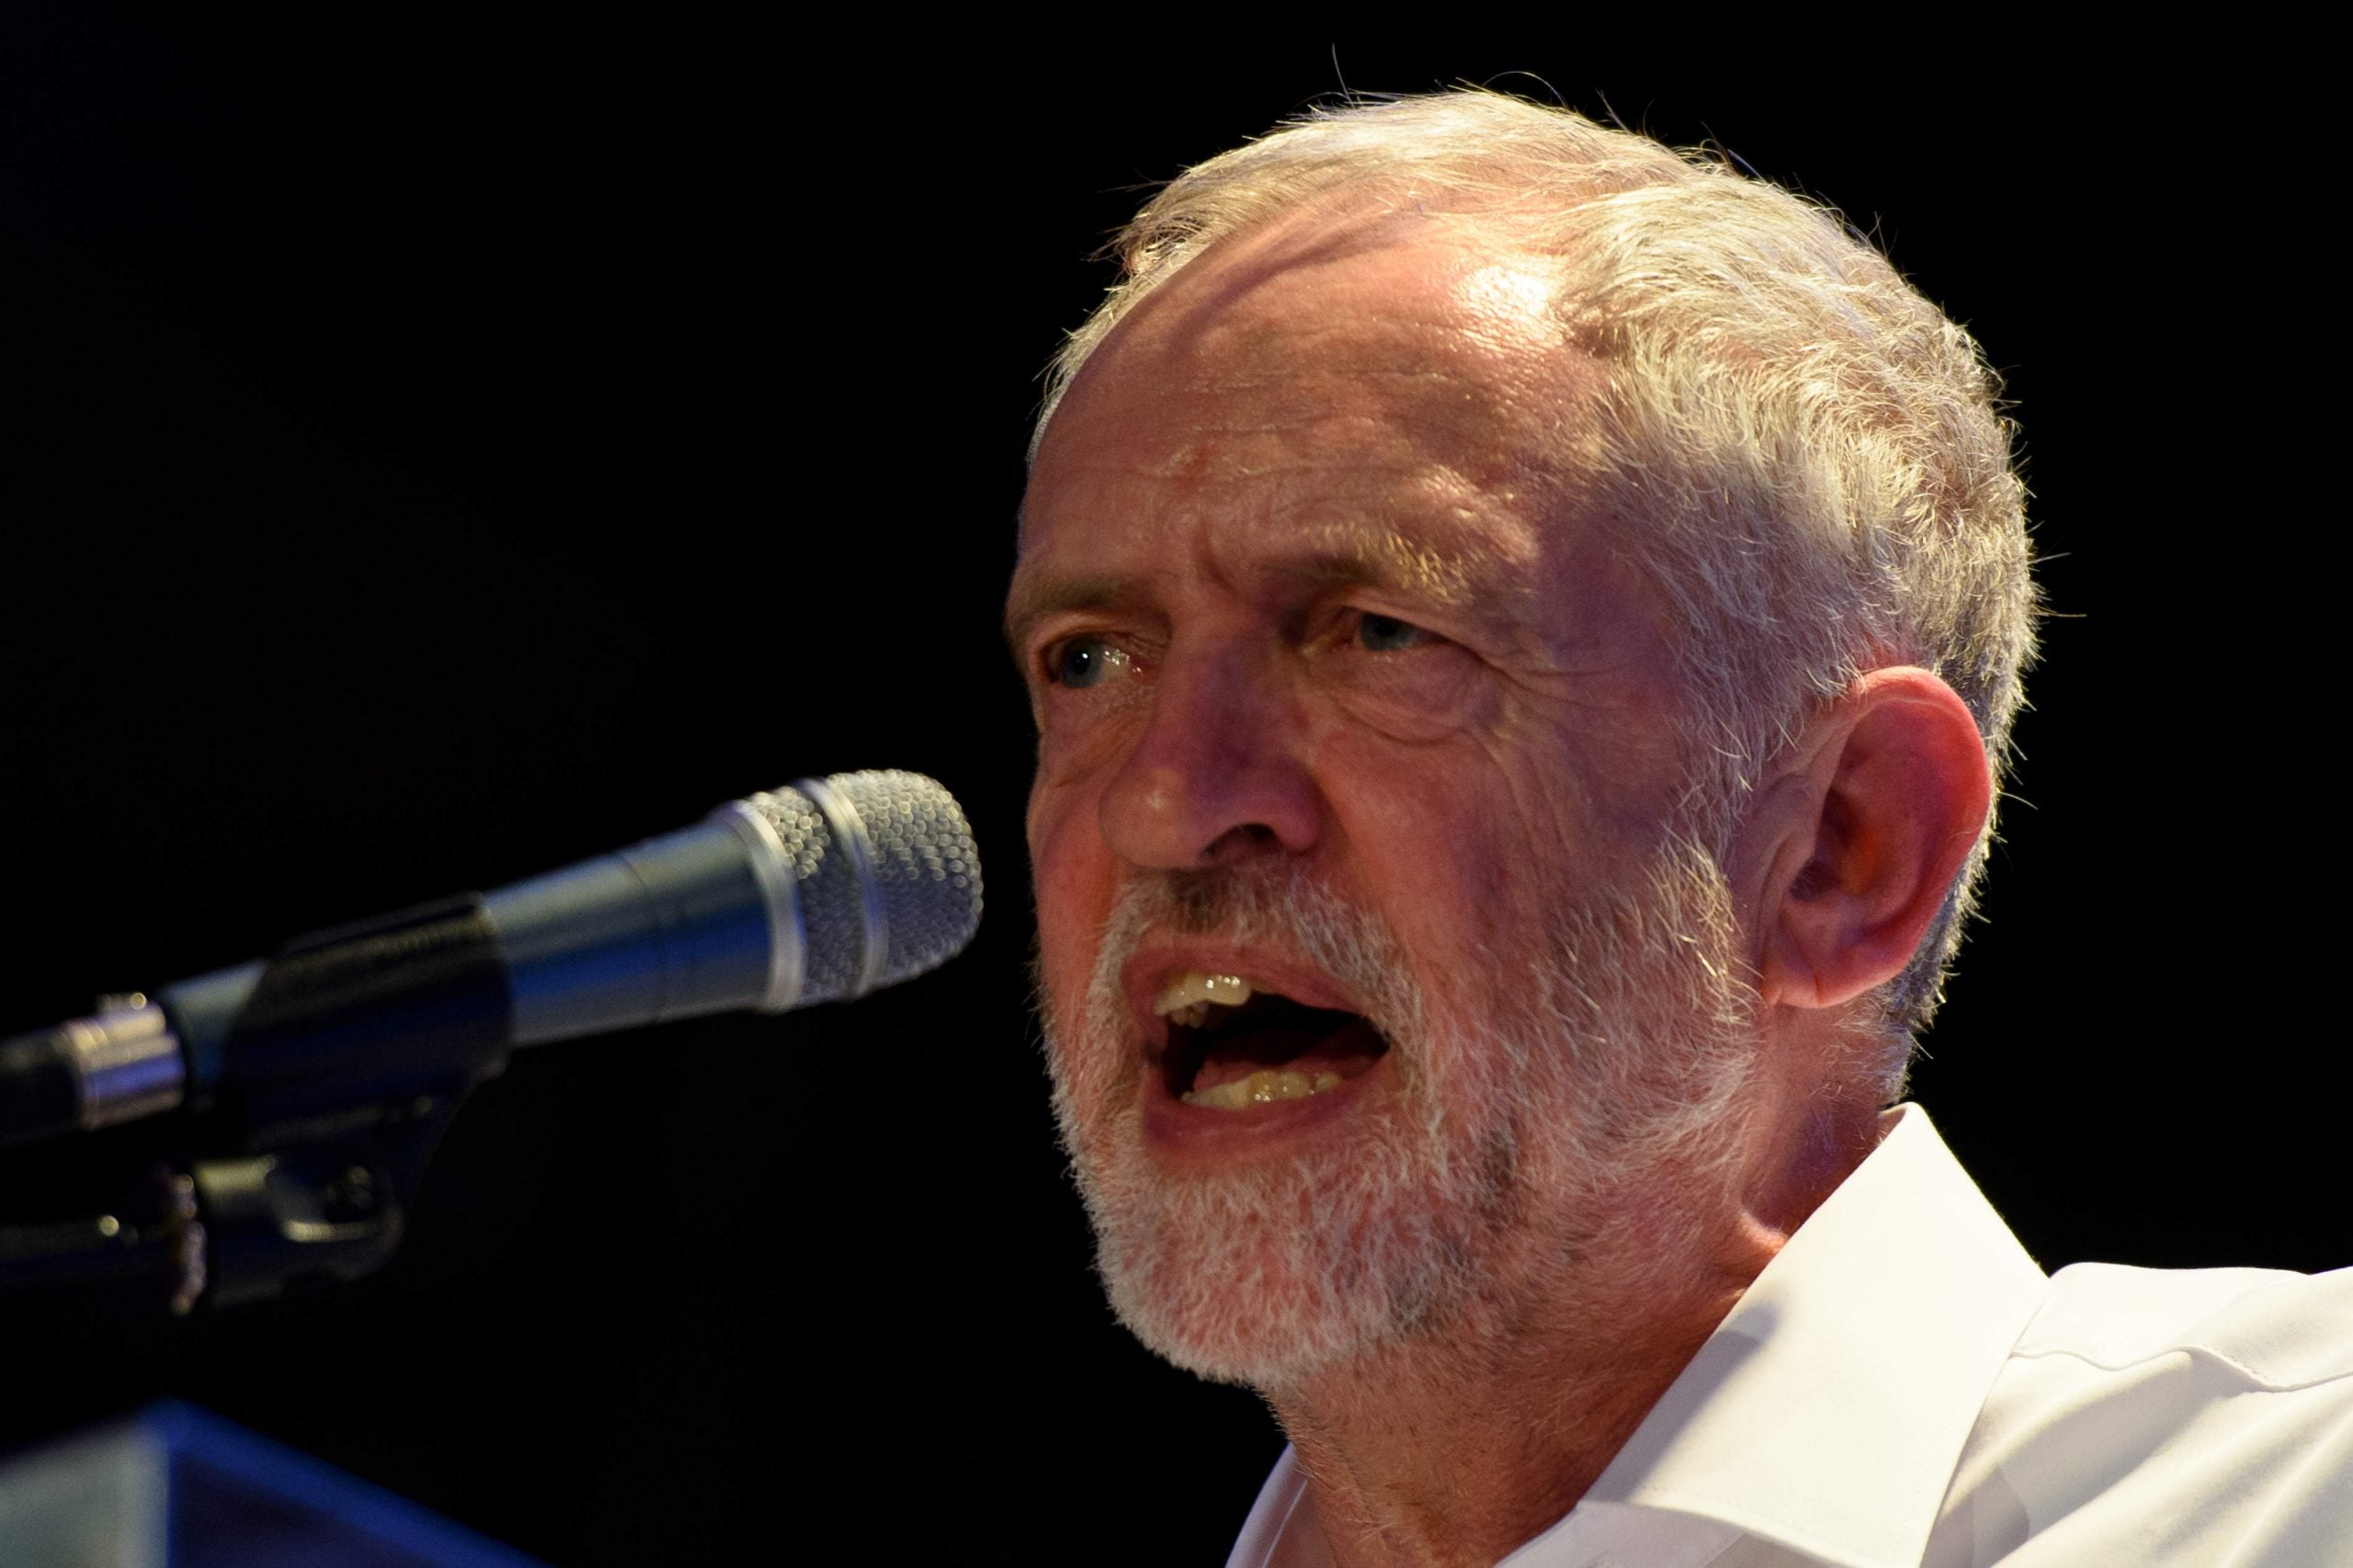 Are Jeremy Corbyn's supporters really that sexist?